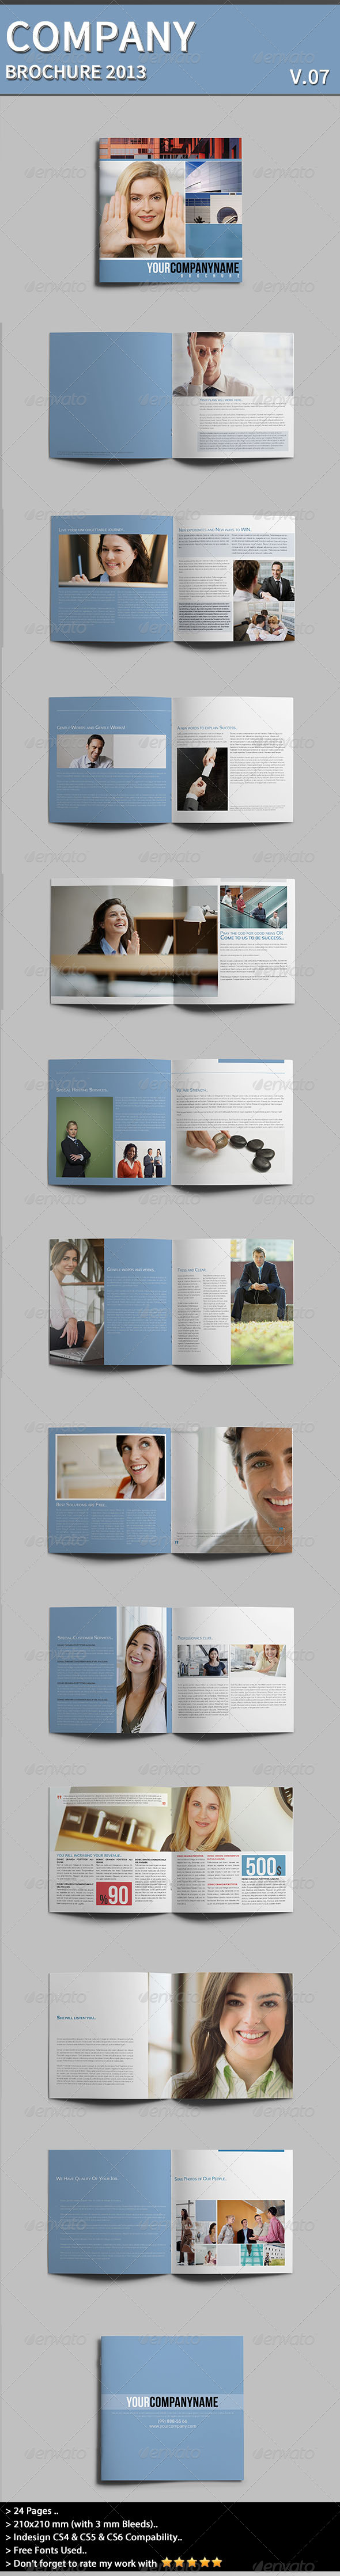 Company Brochure 2013 Part 07 - Informational Brochures